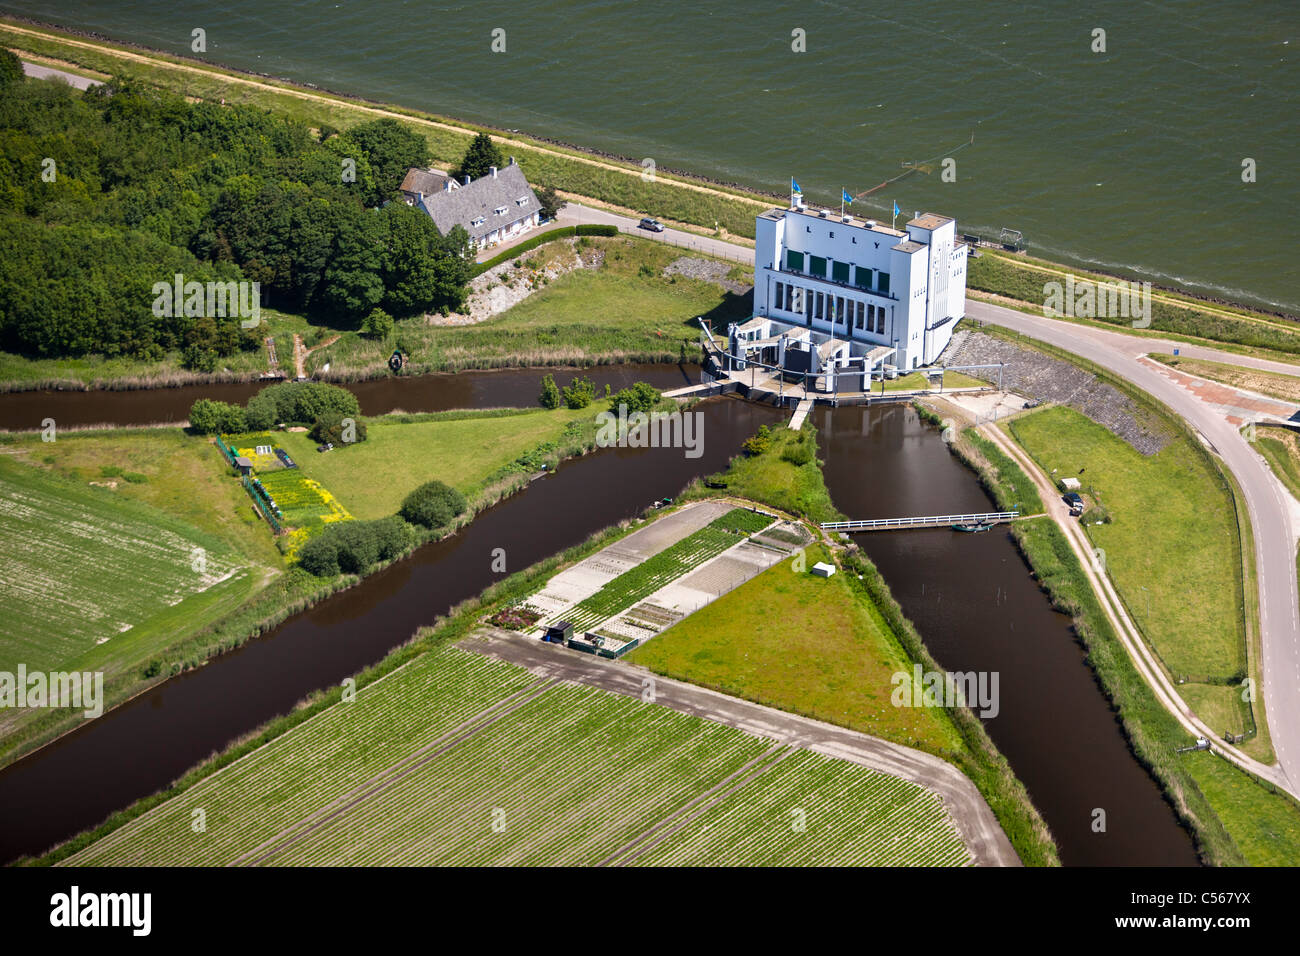 The Netherlands, Medemblik, Pumping station pumping water from polder into lake called IJsselmeer. Aerial. - Stock Image